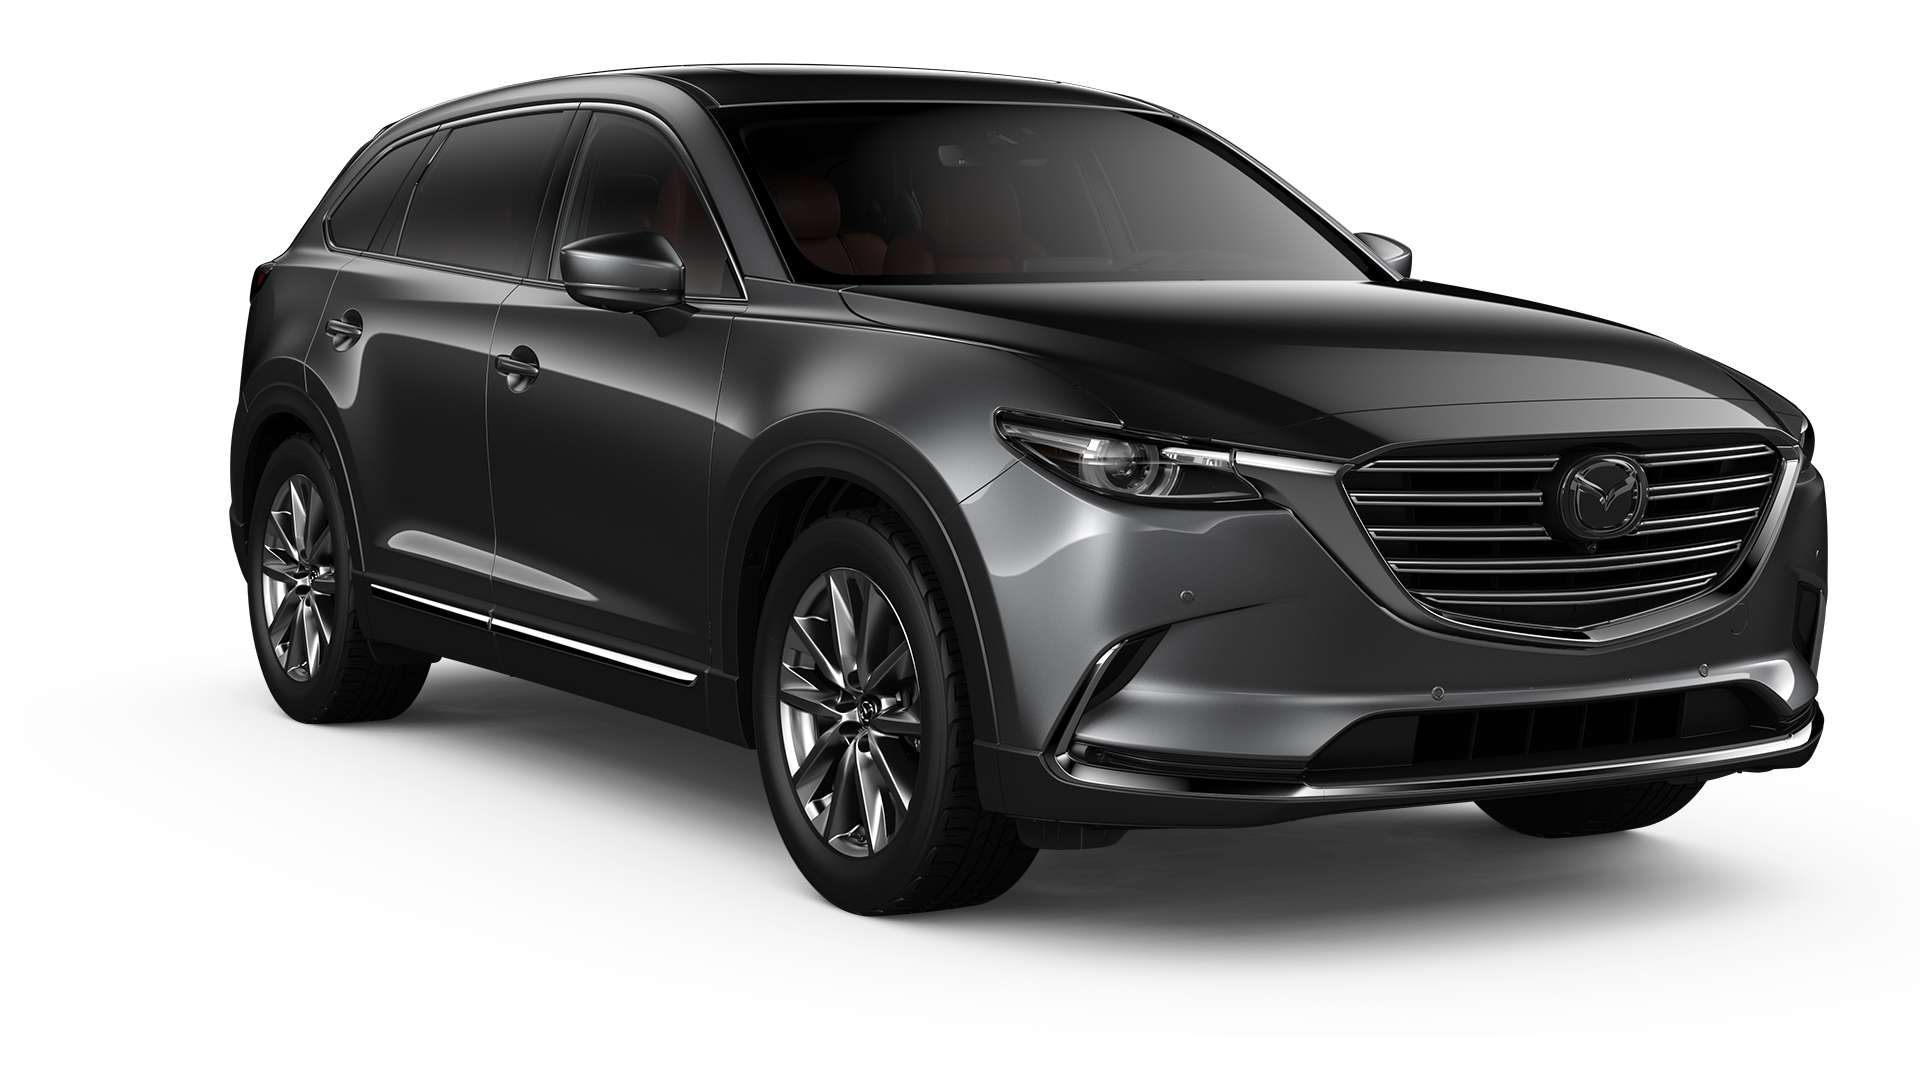 31 A 2019 Mazda Cx 7 Price And Review